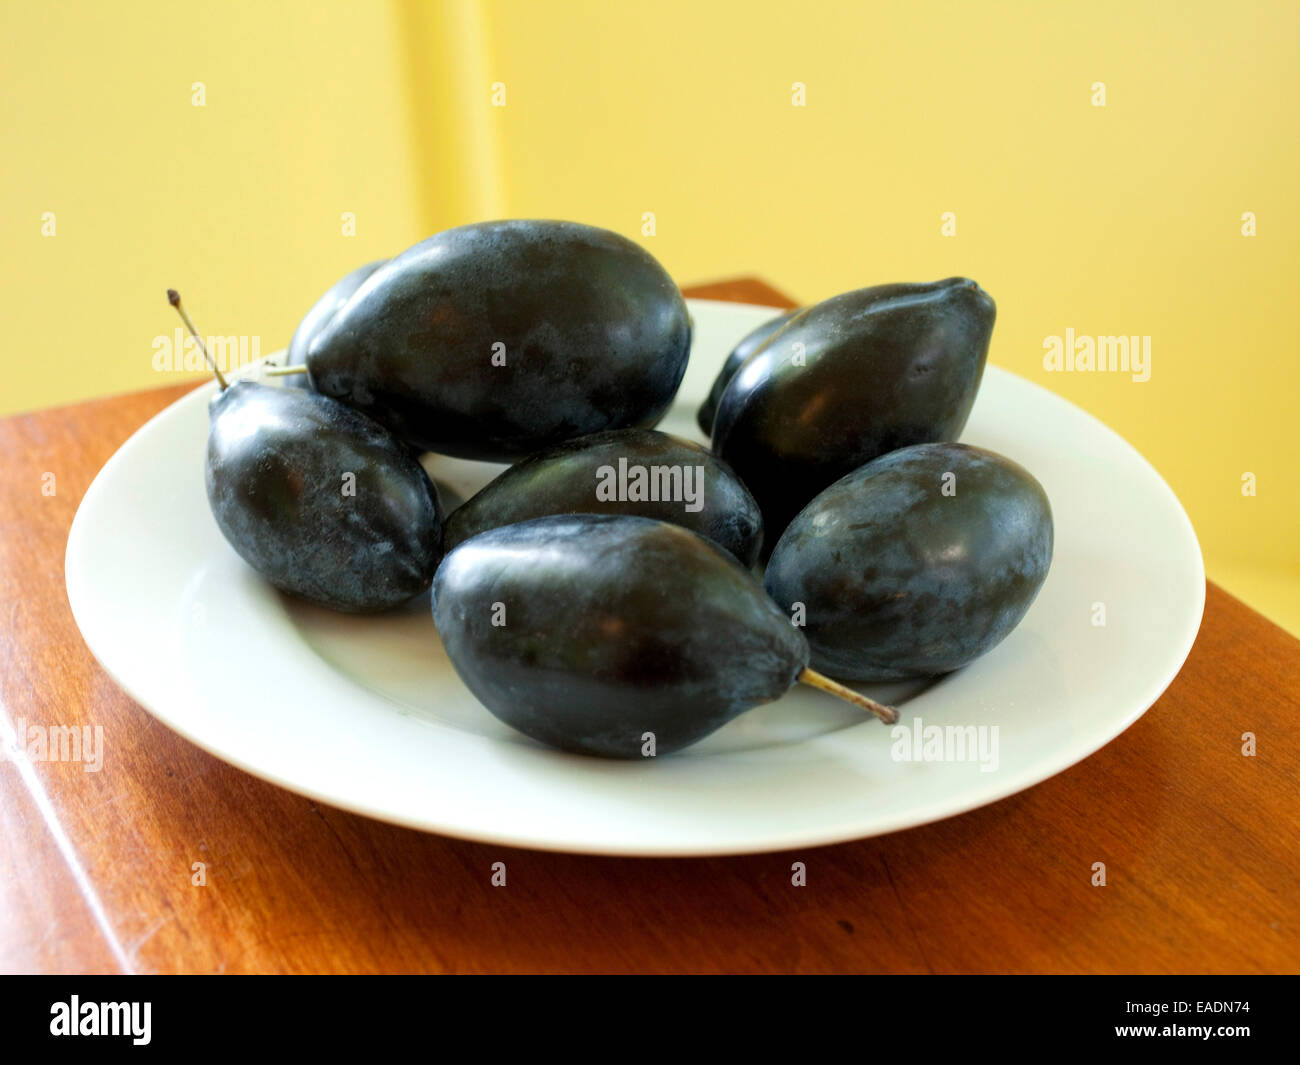 Black Plums On White Plate In Kitchen - Stock Image